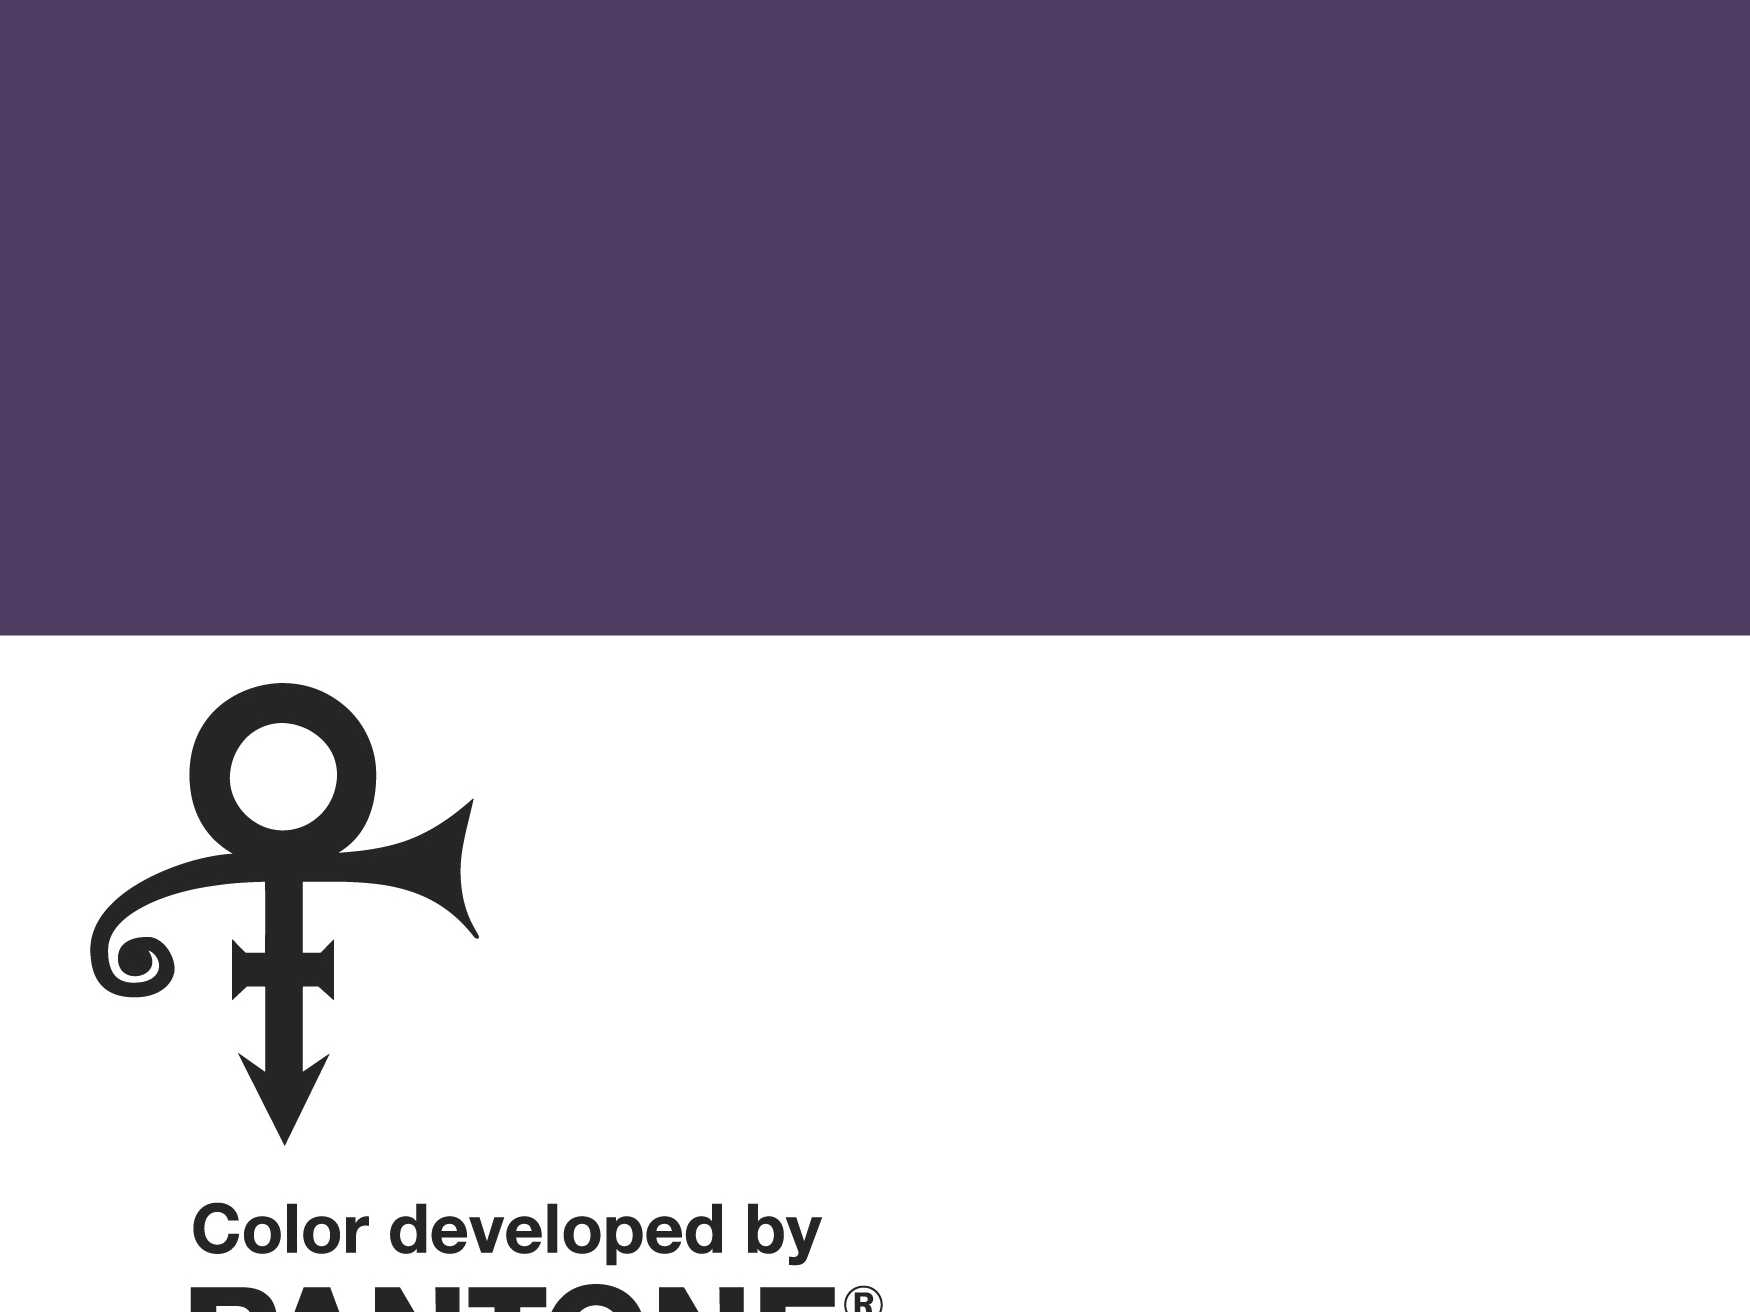 Pantone Creates 'Purple Rain' Hue to Honor Prince